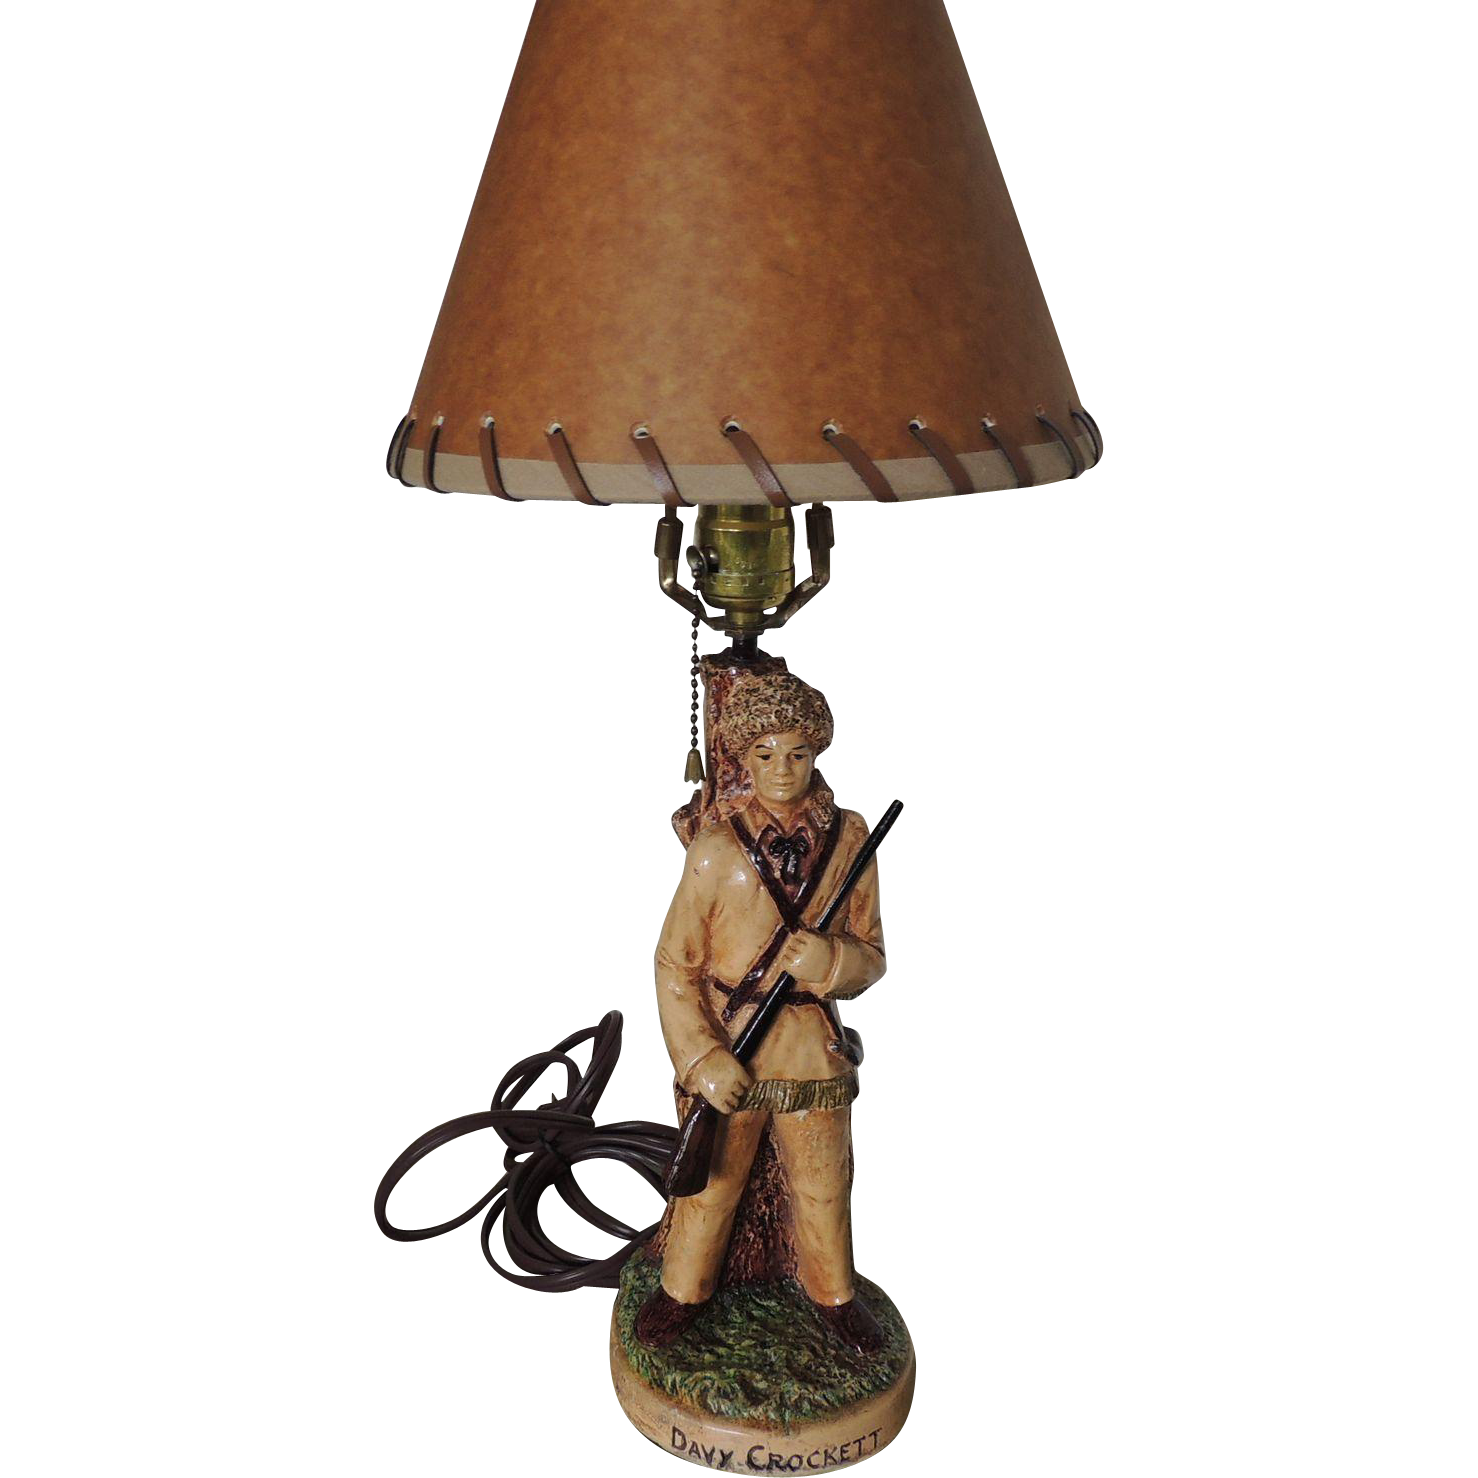 Davy Crockett Lamp Sold On Ruby Lane